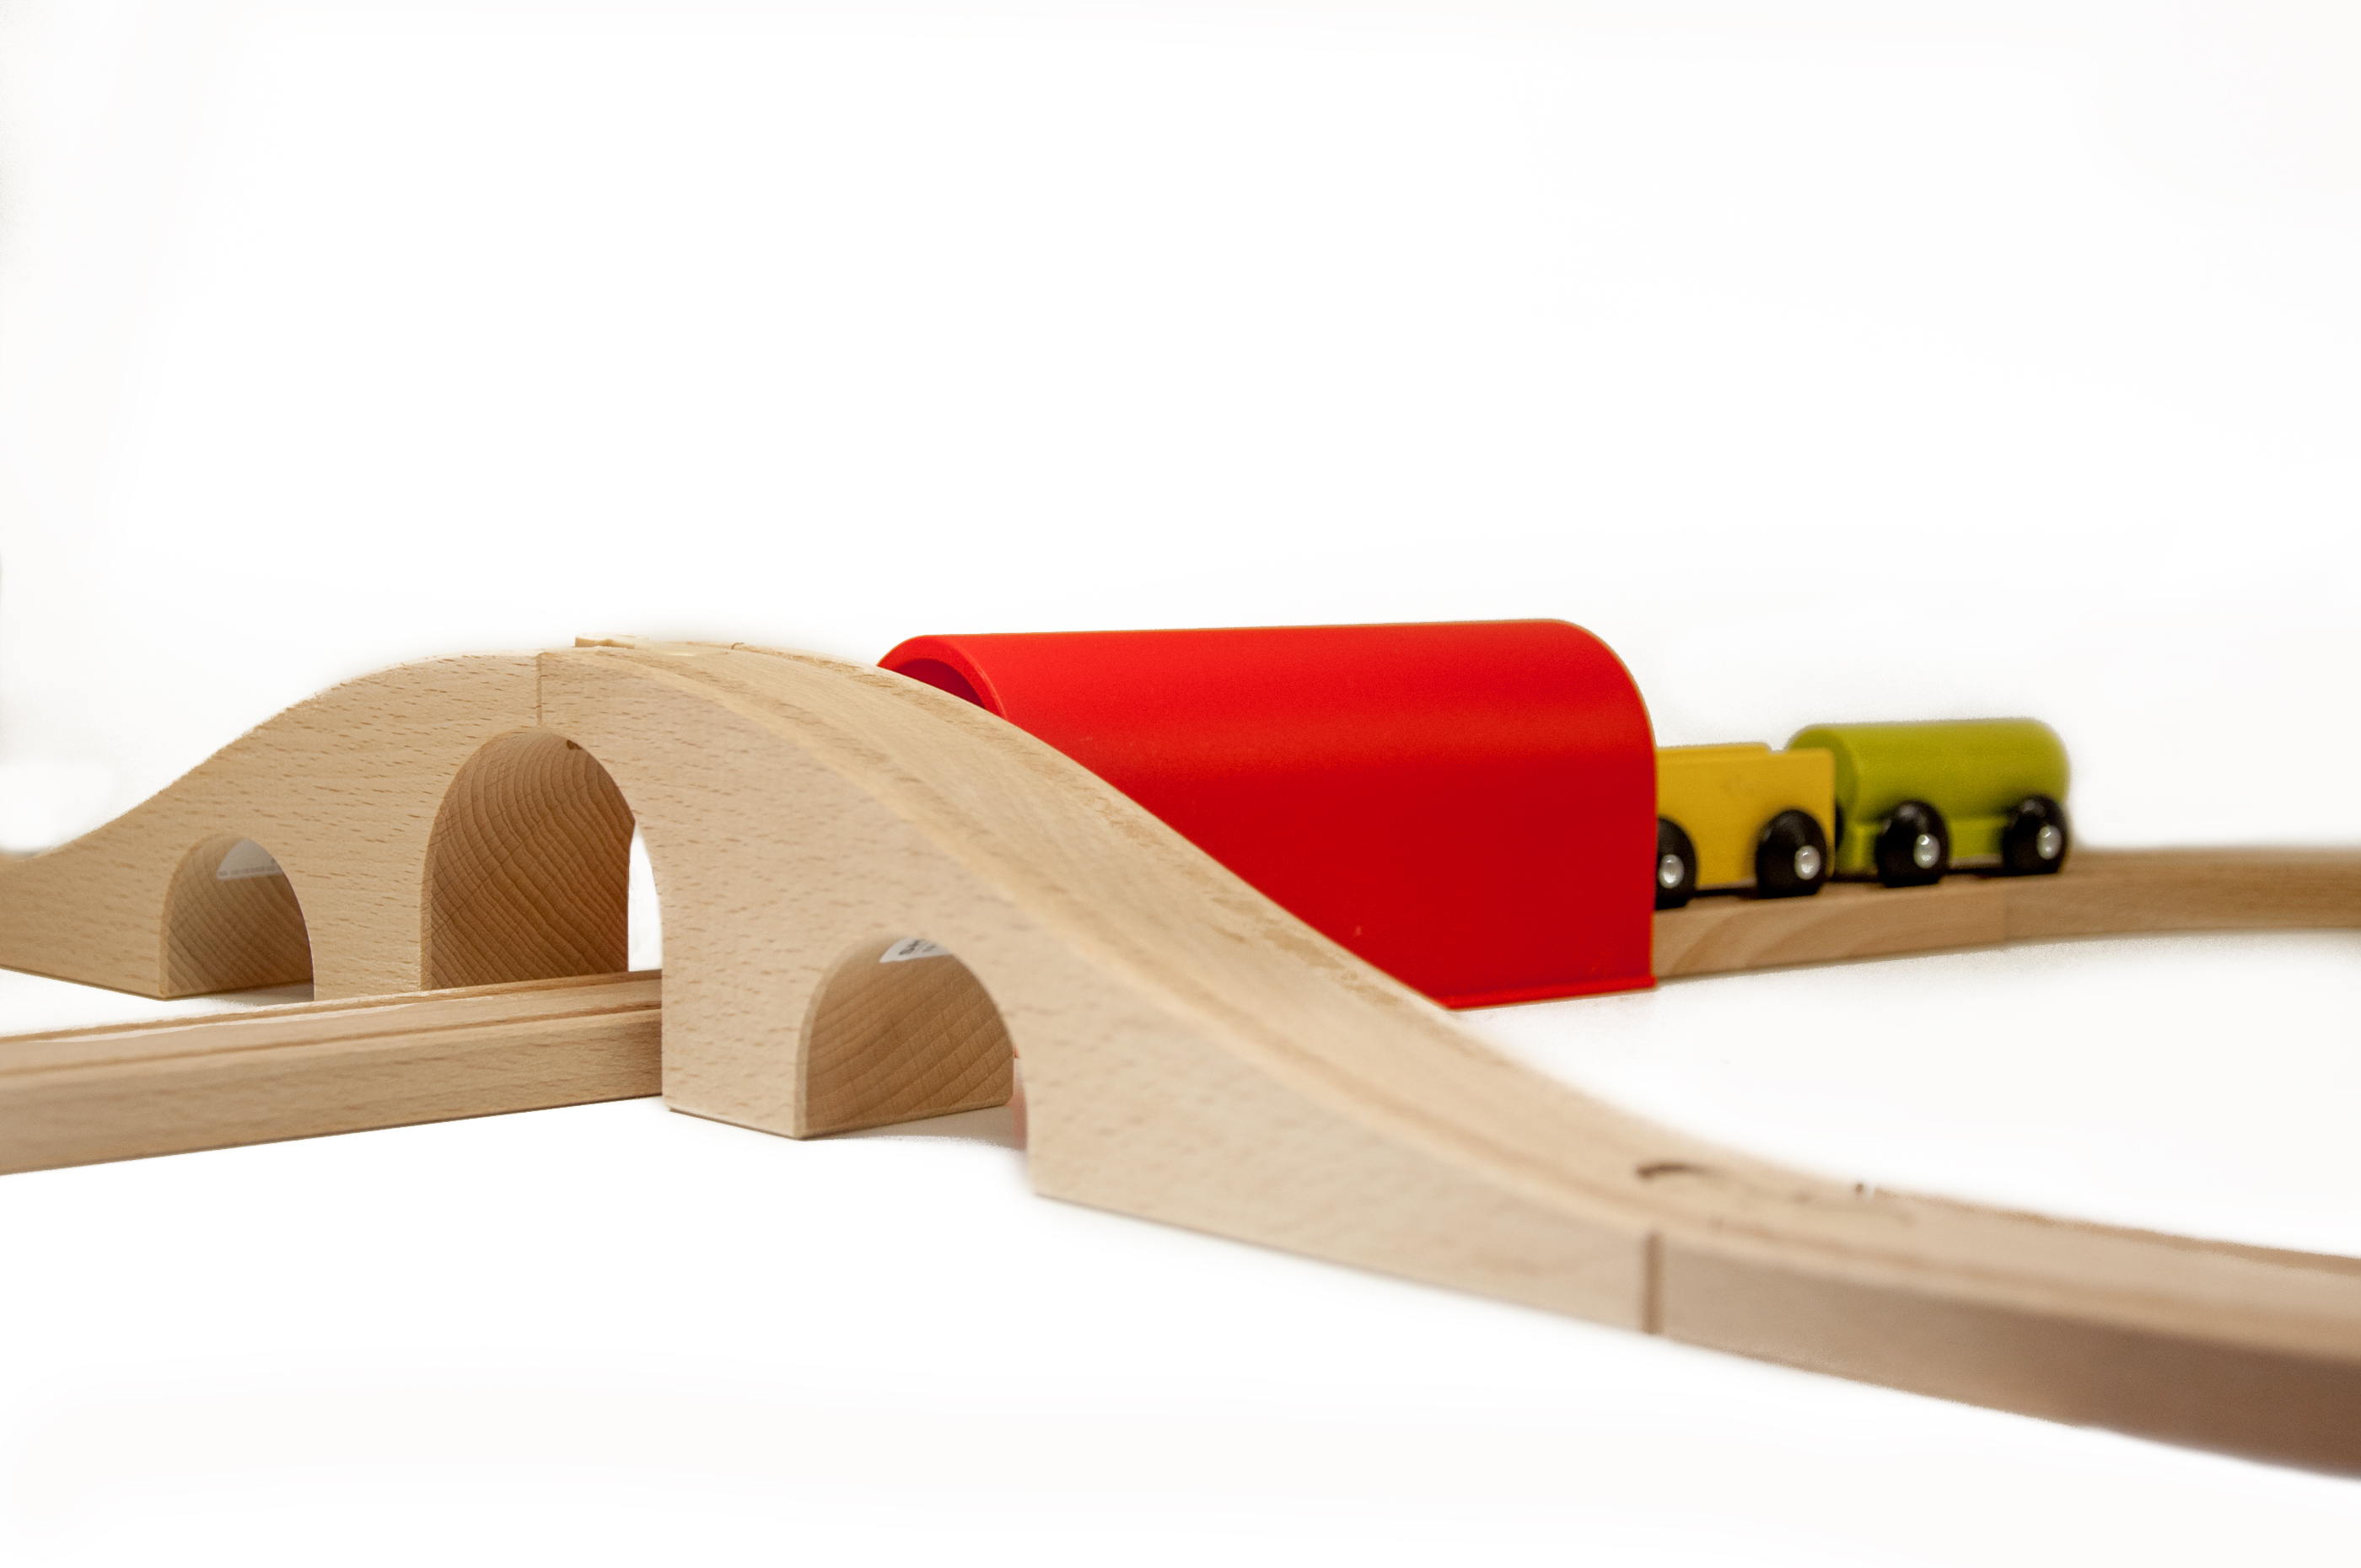 Wooden toy train on railroad, Abstract, Track, Public, Railroad, HQ Photo